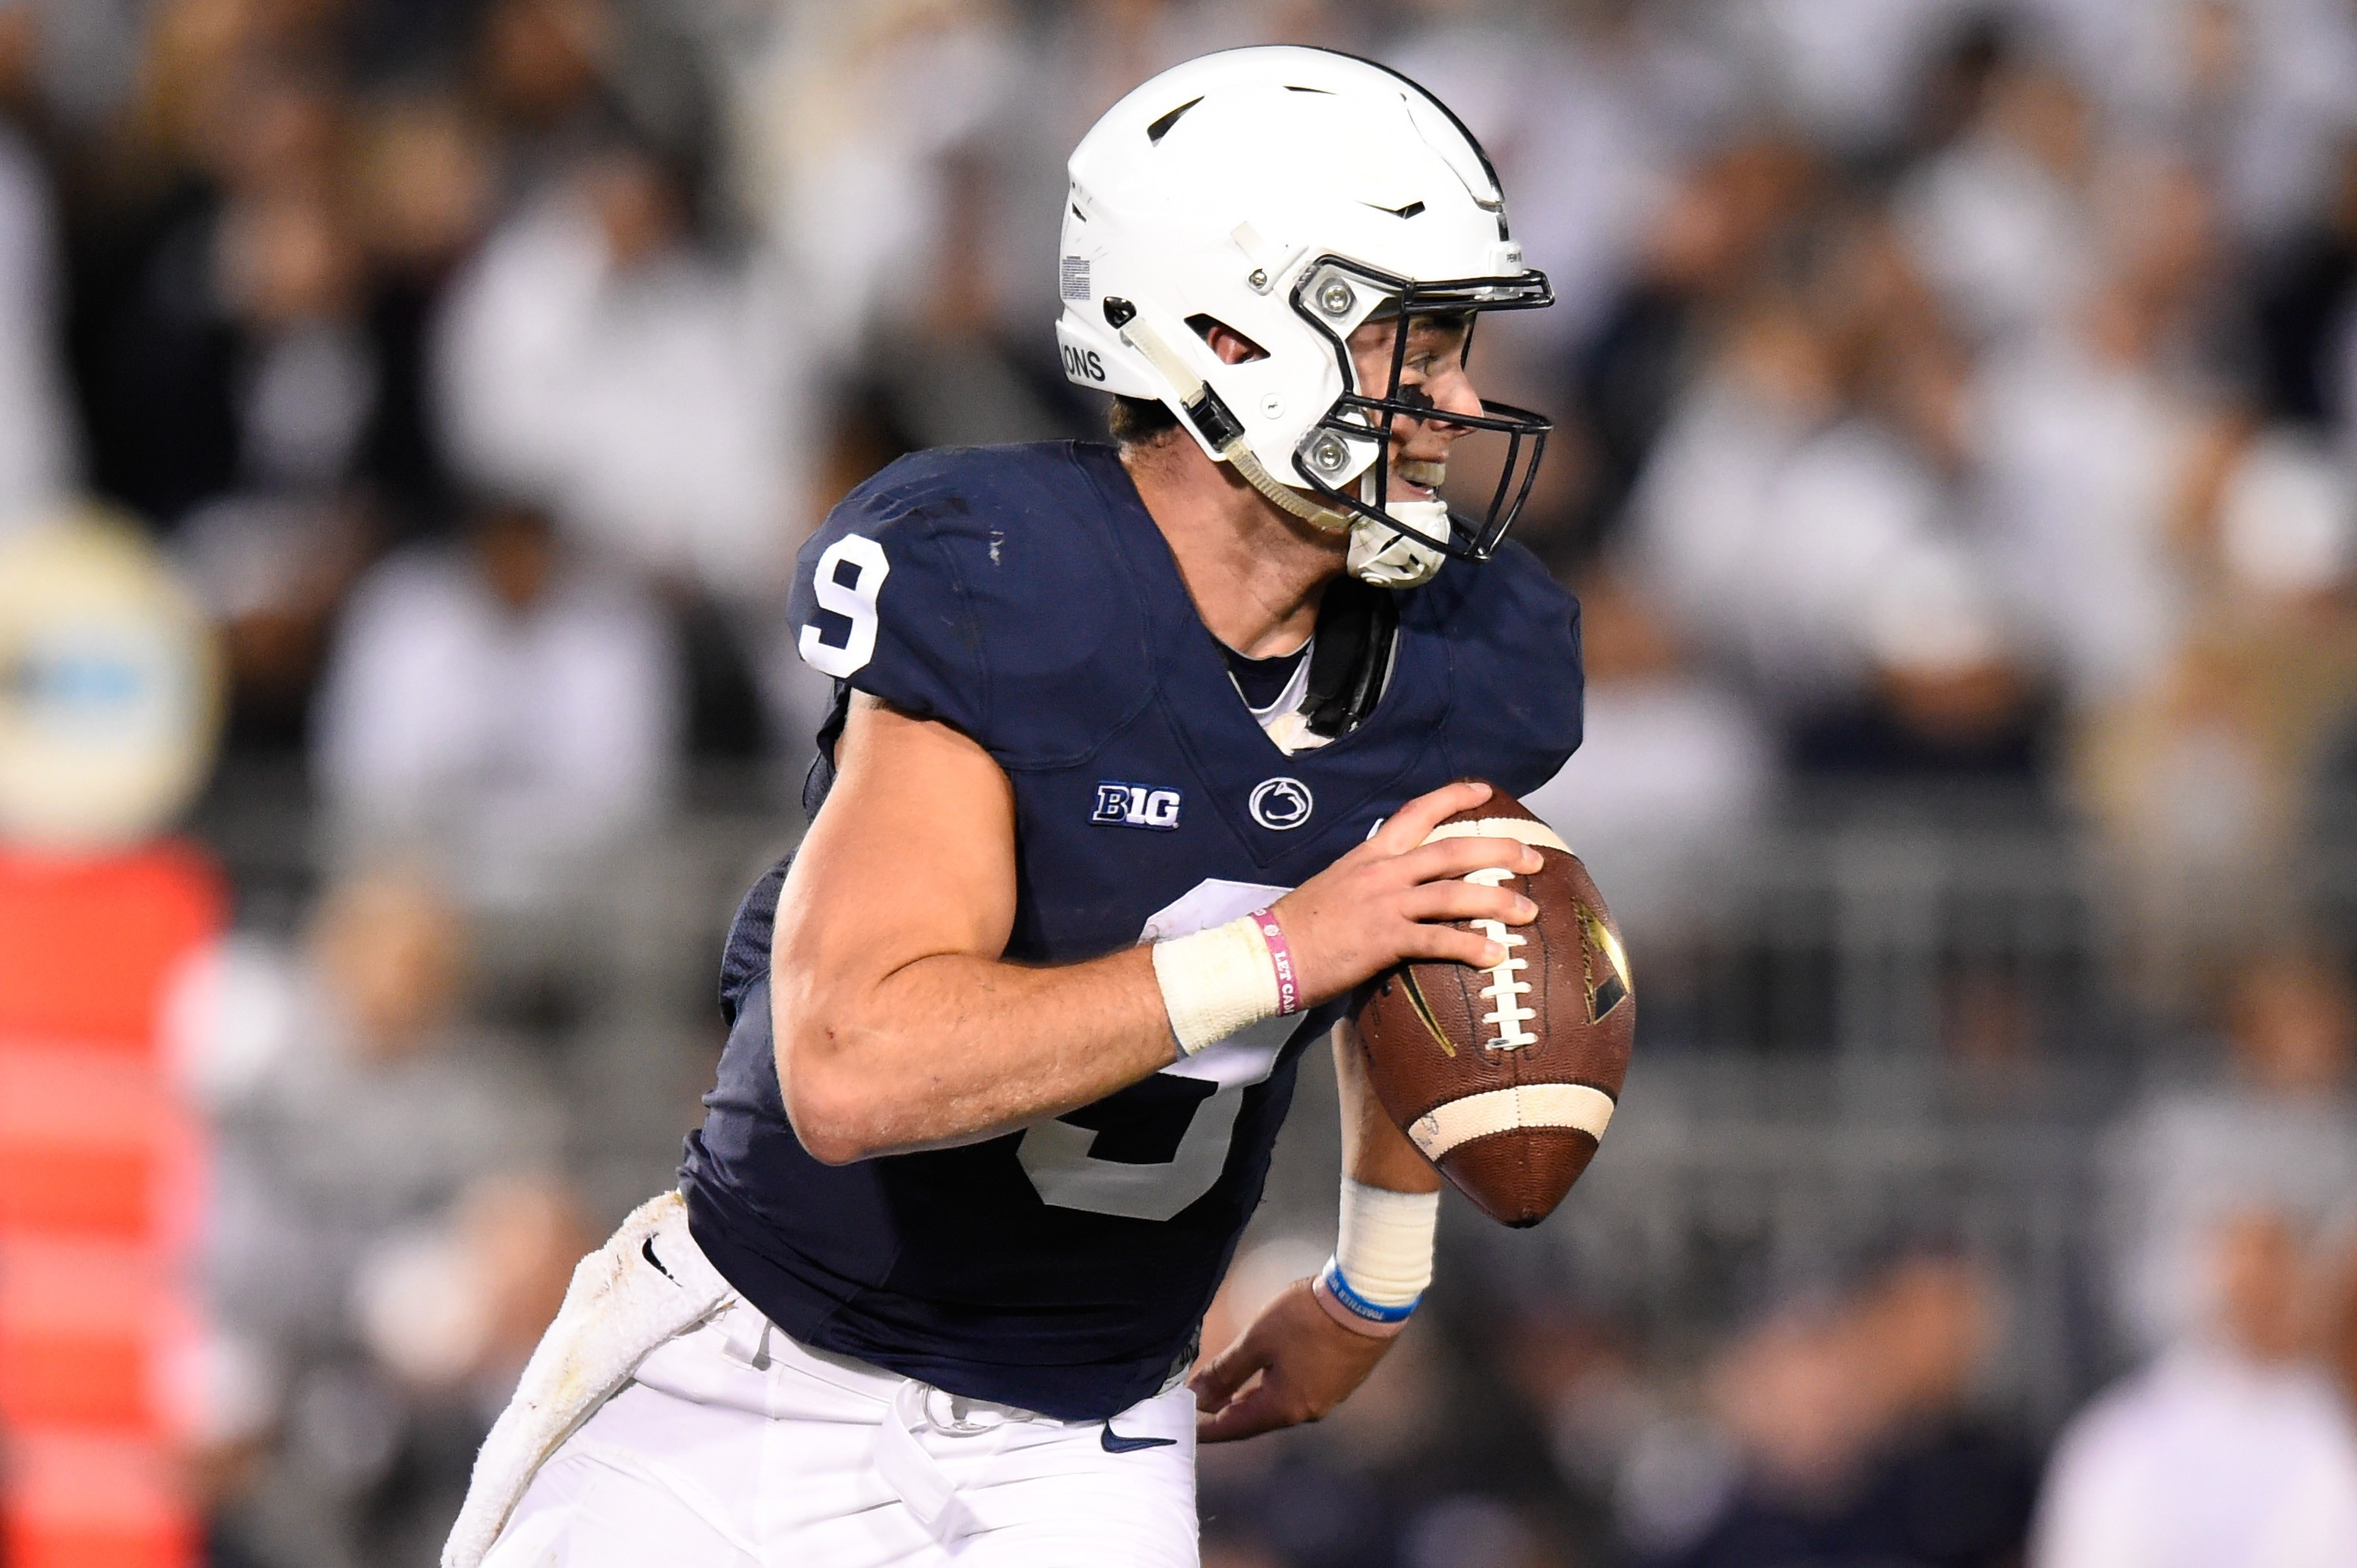 Get the latest Penn State Nittany Lions news scores stats standings rumors and more from ESPN